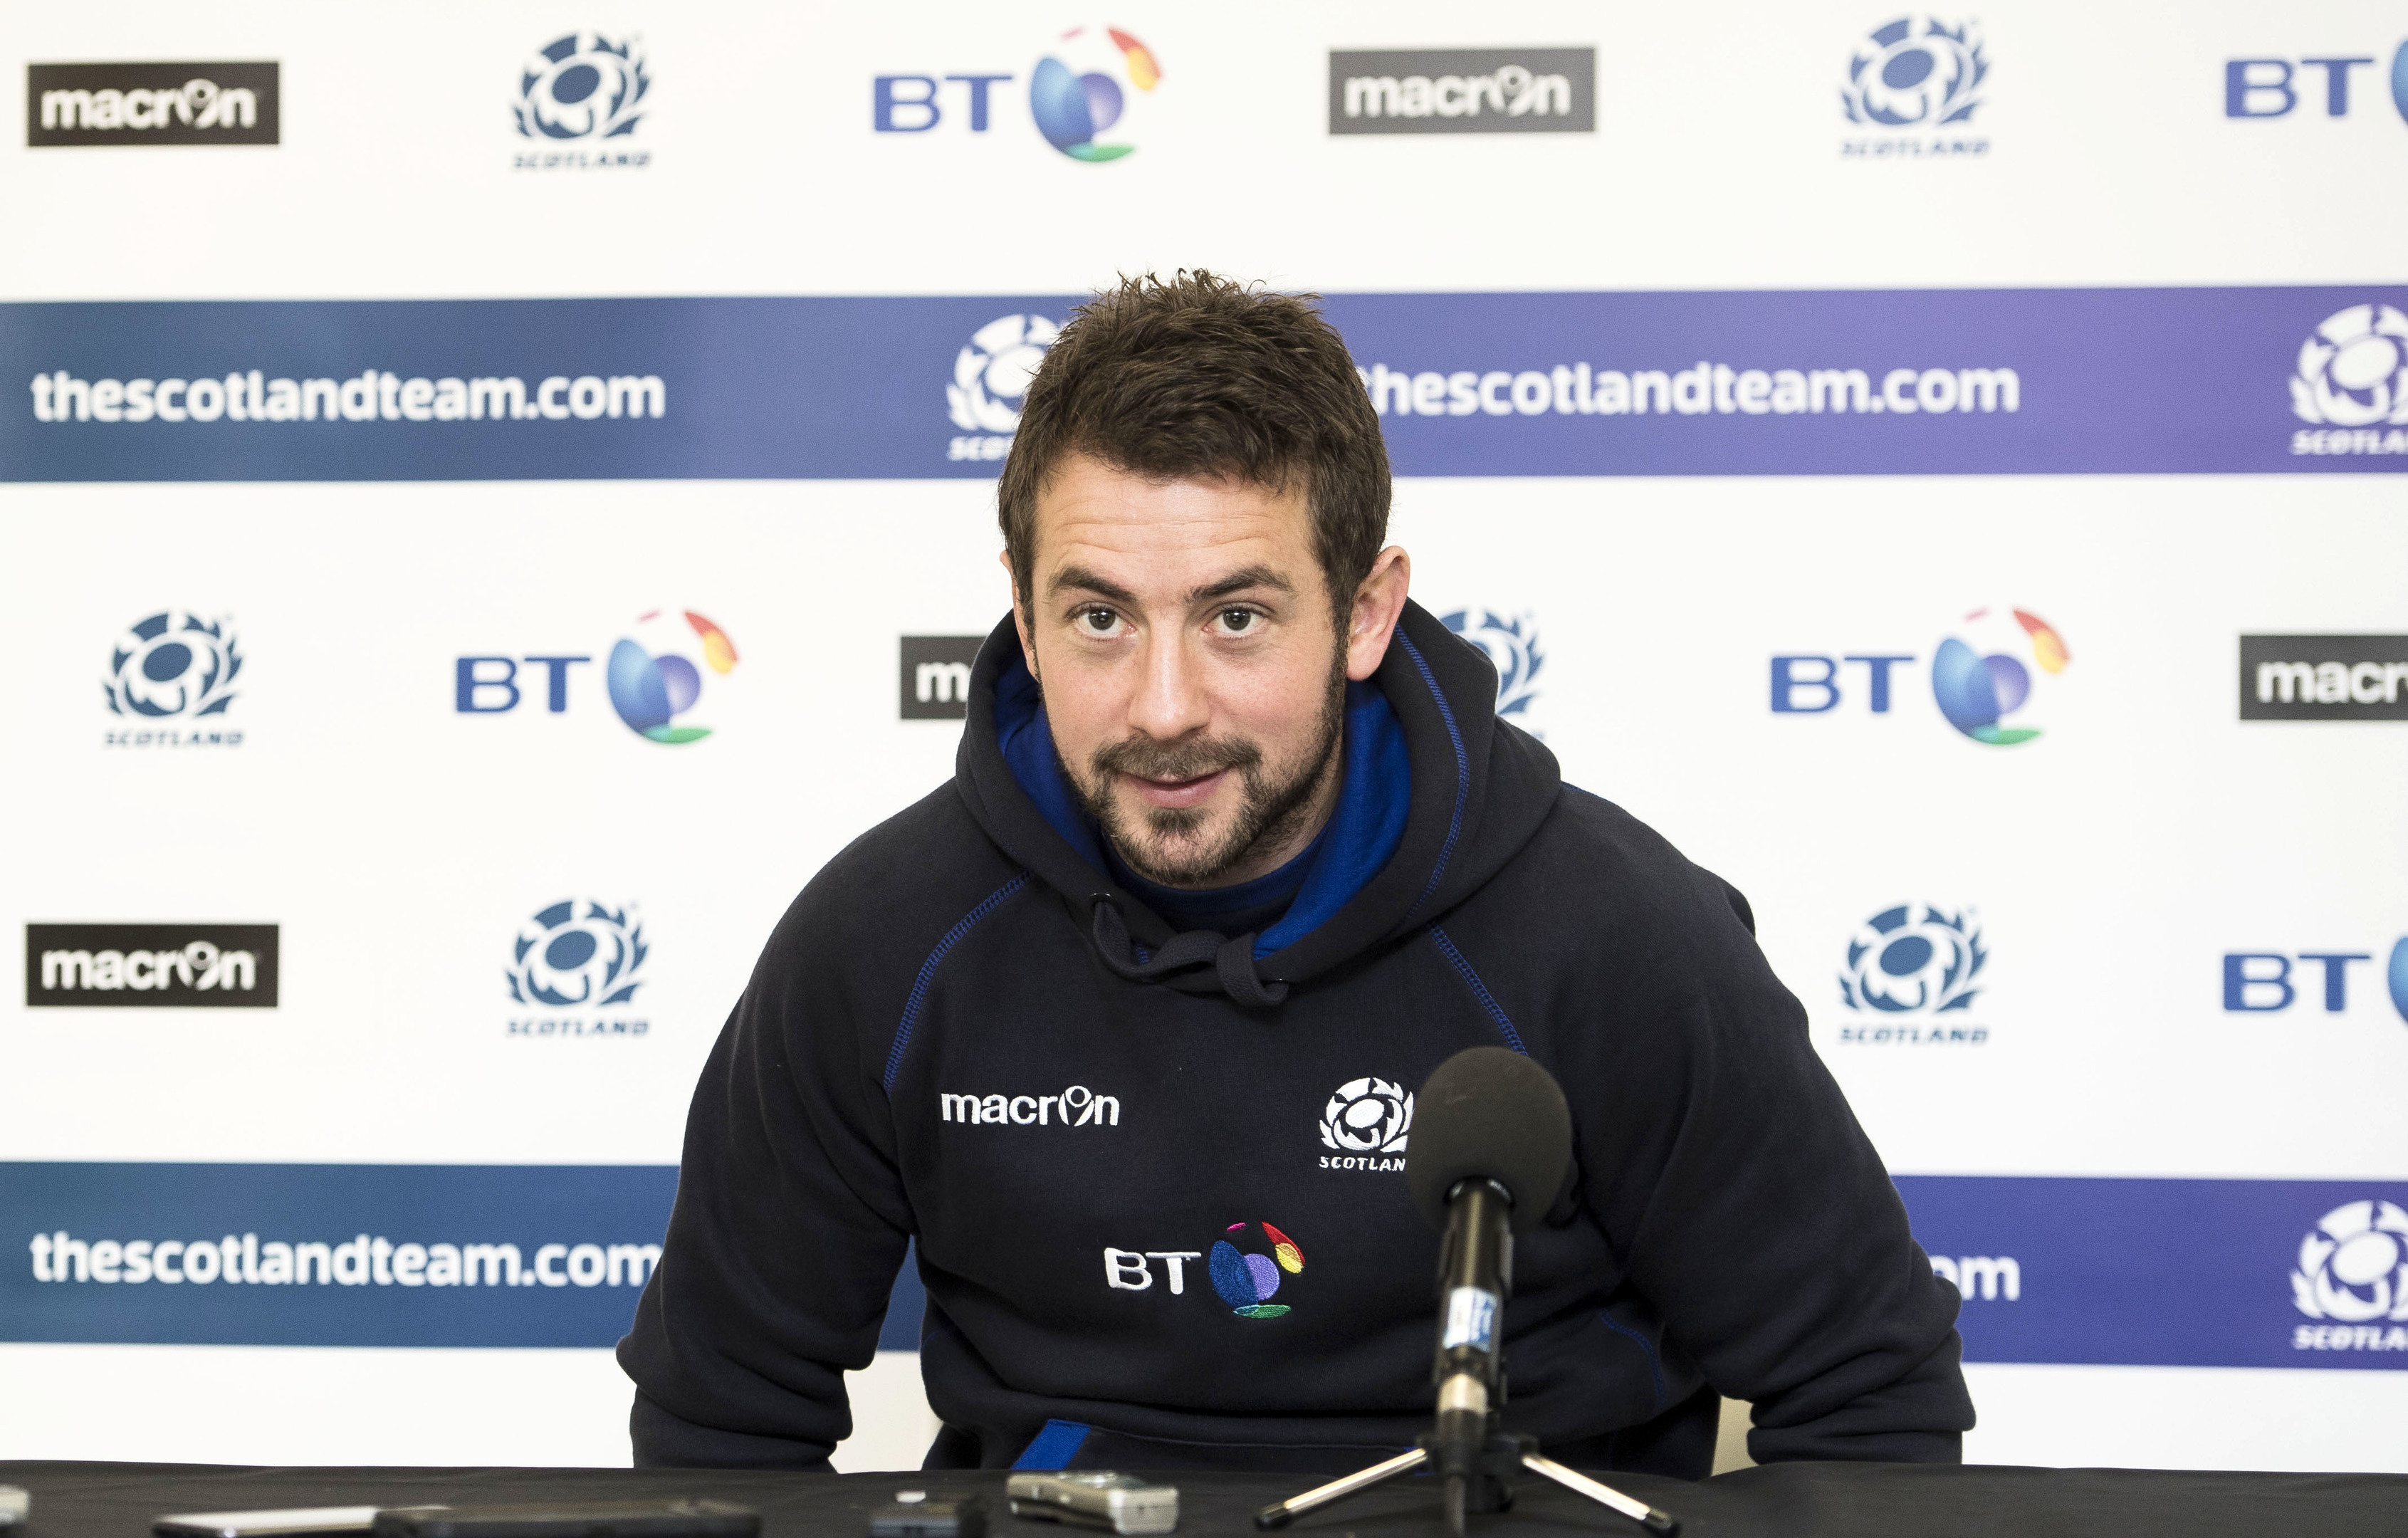 Ruled out — but who should replace Greig Laidlaw?